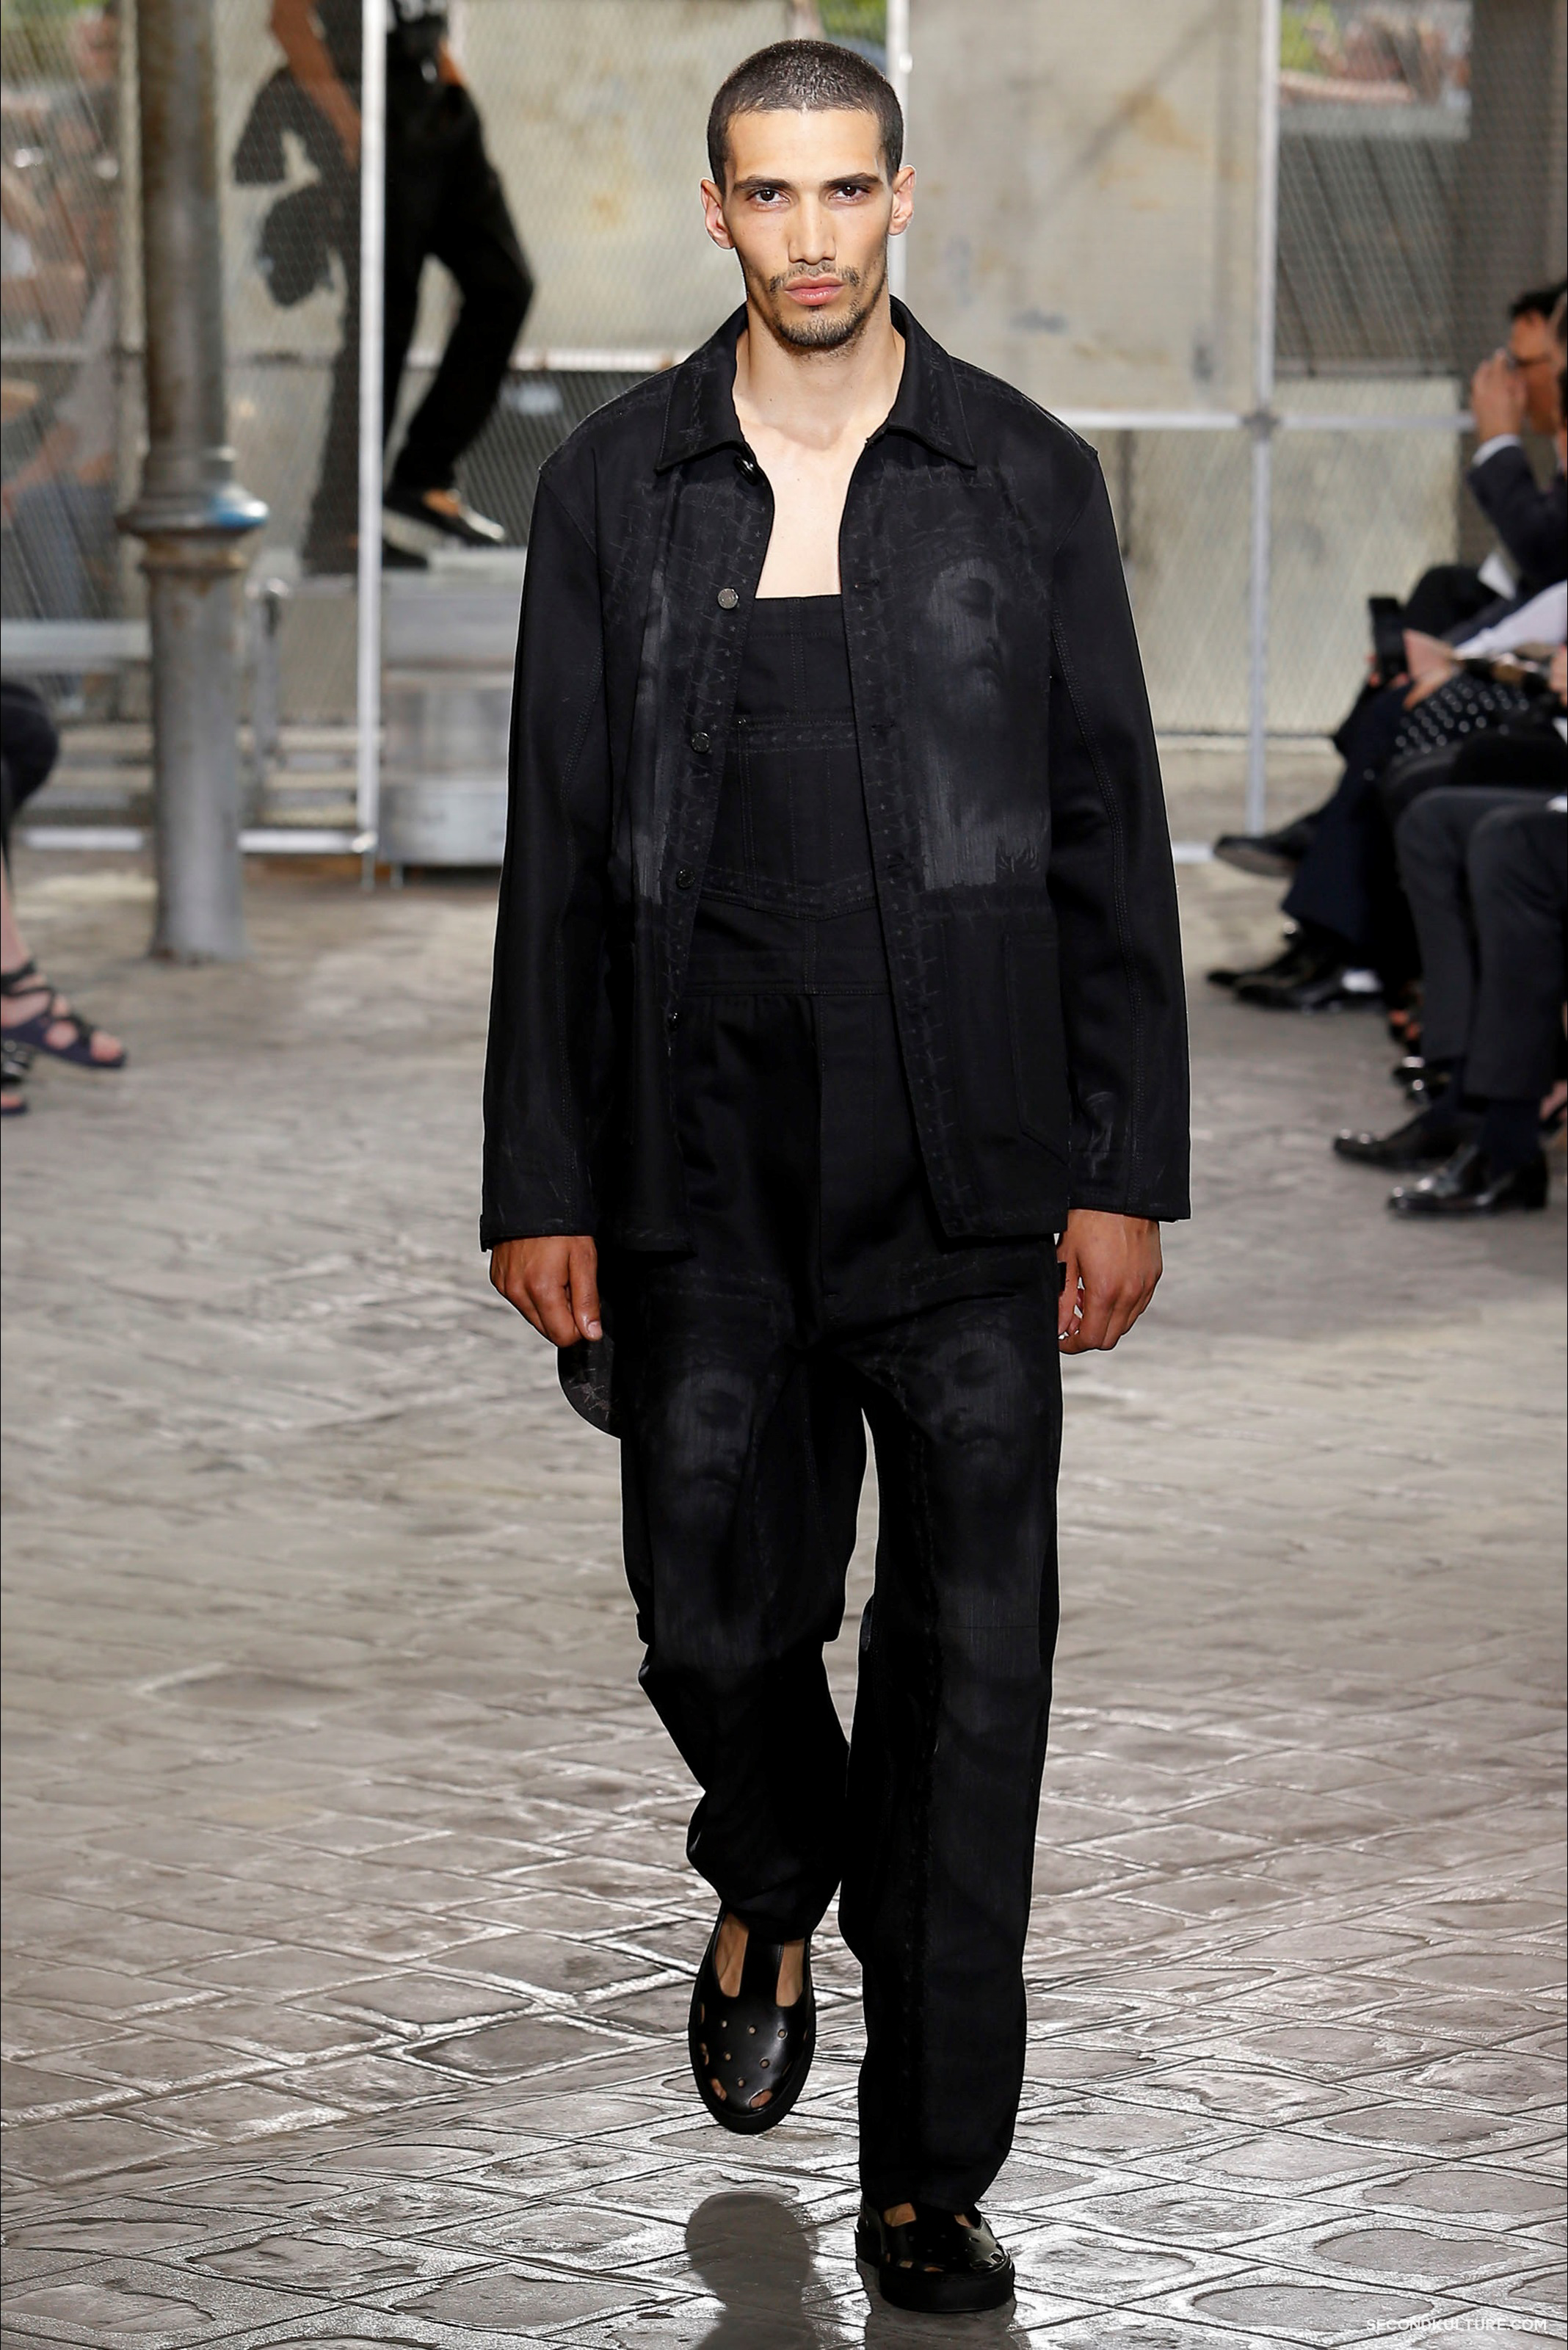 Givenchy Spring Summer 2016 Menswear Jesus Religion Chain Runway Show Look 13